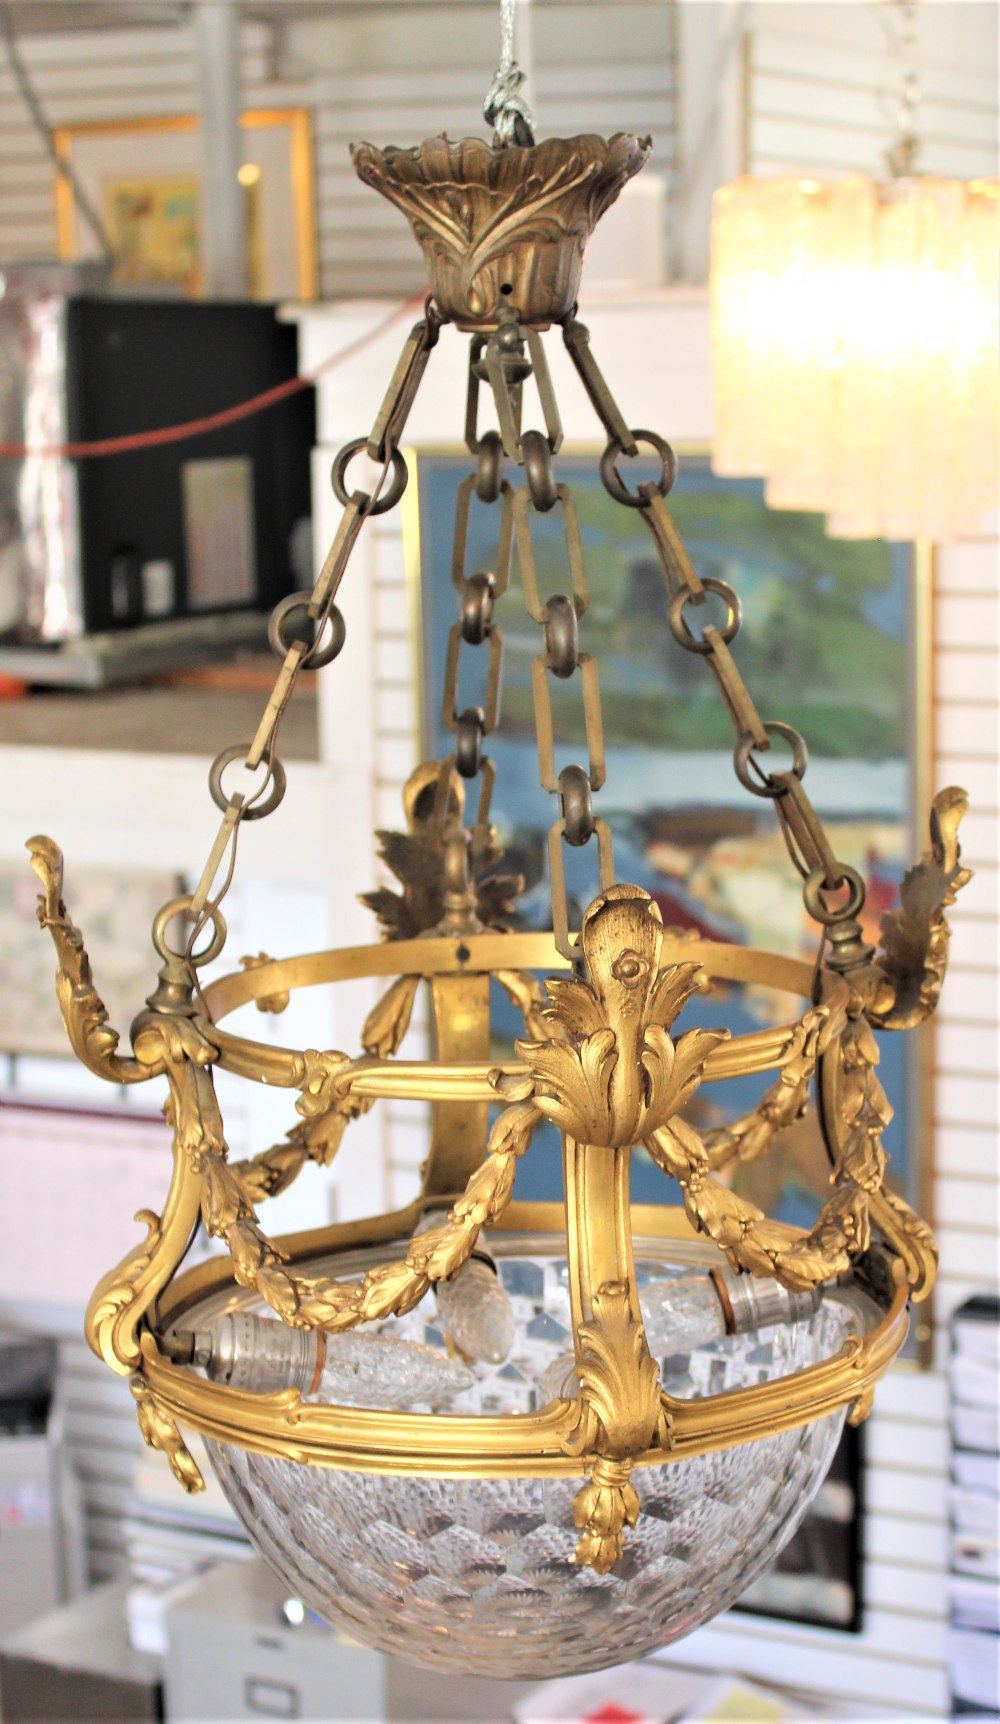 Rare 19th C. French Baccarat Glass Chandelier - Image 6 of 7